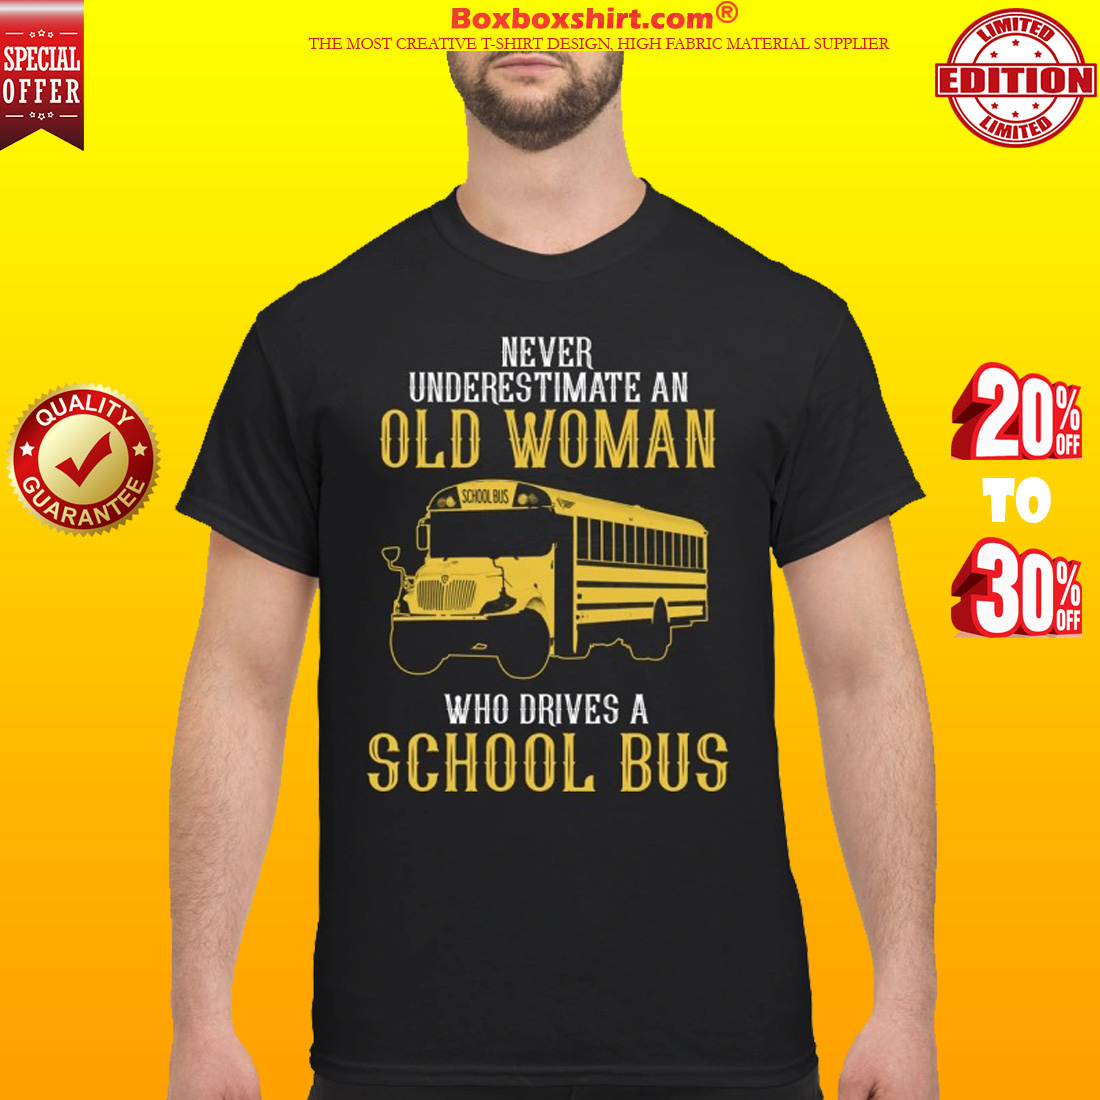 Never underestimate an old woman who drives a school bus classic shirt